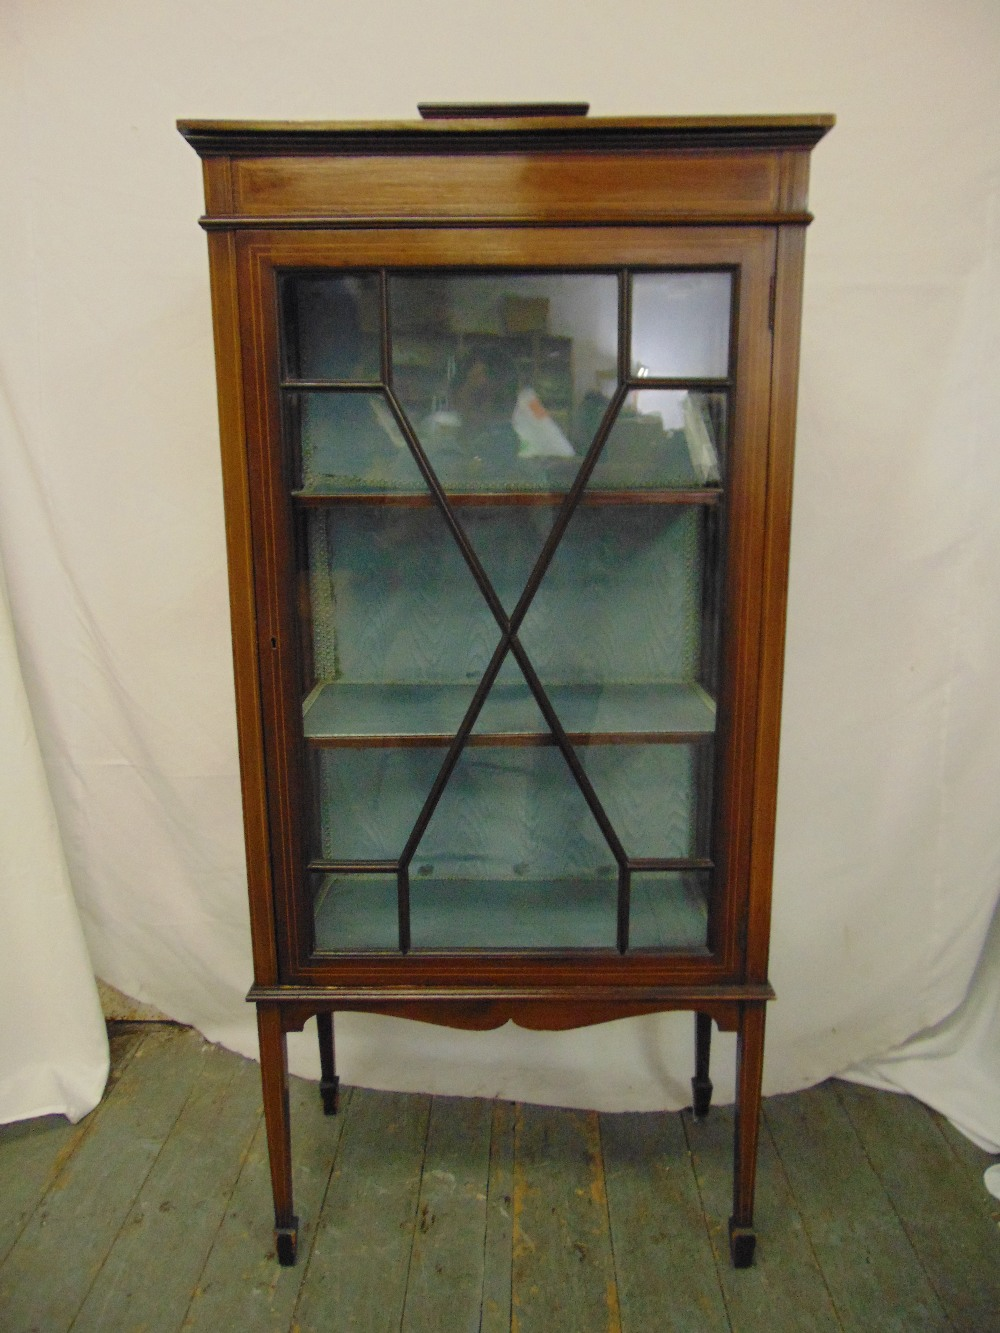 Lot 16 - An Edwardian rectangular mahogany glazed inlaid display cabinet on four tapering rectangular legs